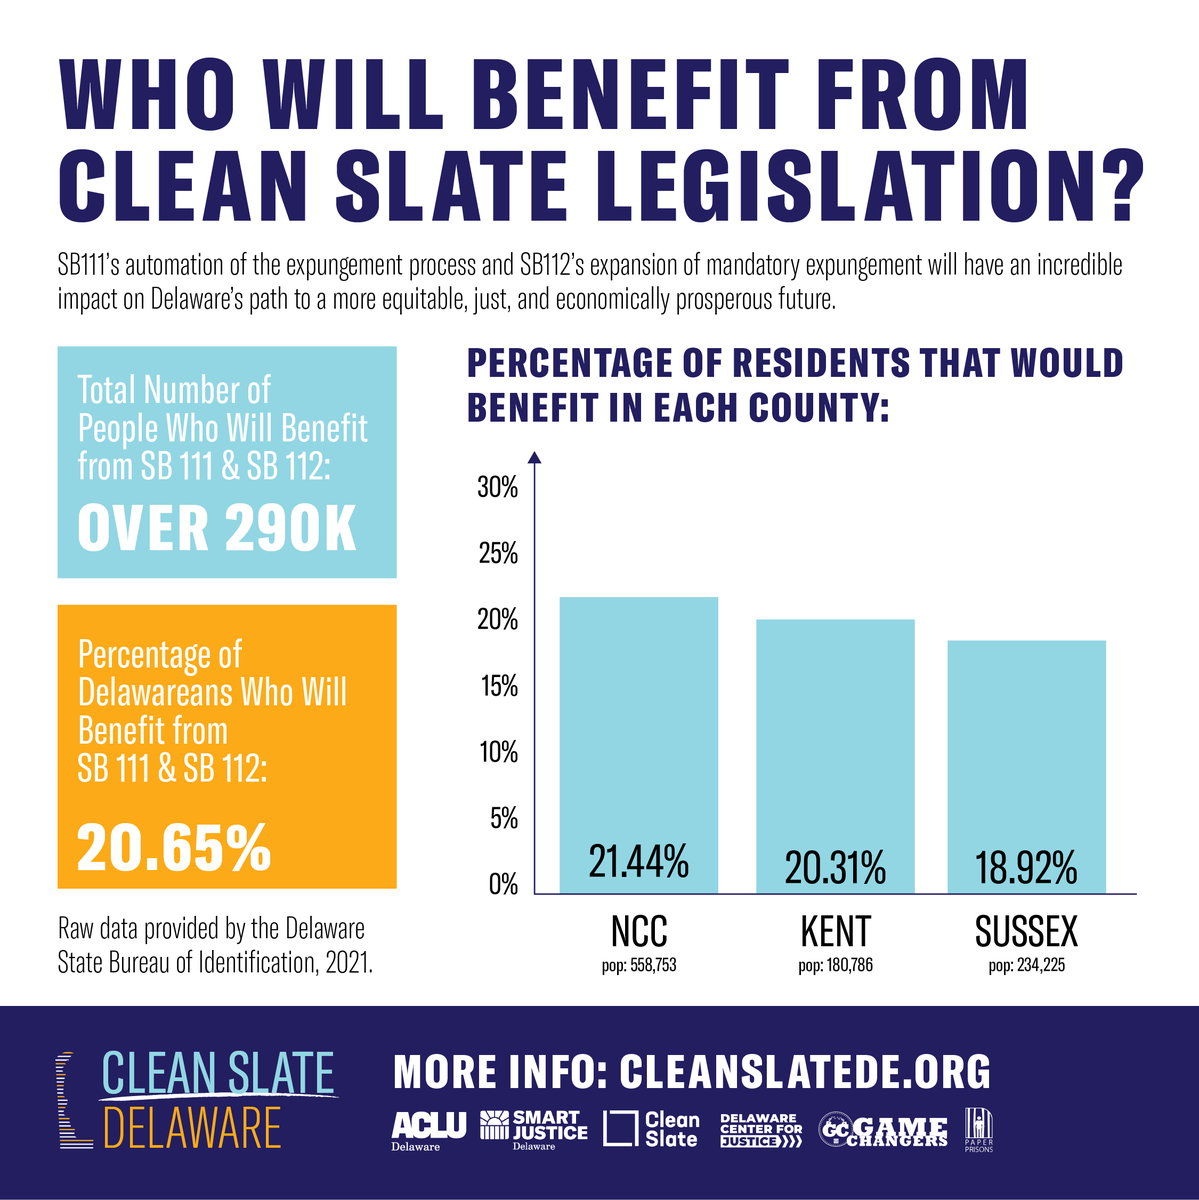 Delaware's Clean Slate bills, SB 111 & 112, will help over 290,000 people — over 20% of Delaware, and each county will benefit nearly as much as the next.  These bills need your help. Send a letter to your House Rep and tell them to support #CleanSlateDE! https://t.co/rW7wJV1bDC https://t.co/ONz4MvSKbD